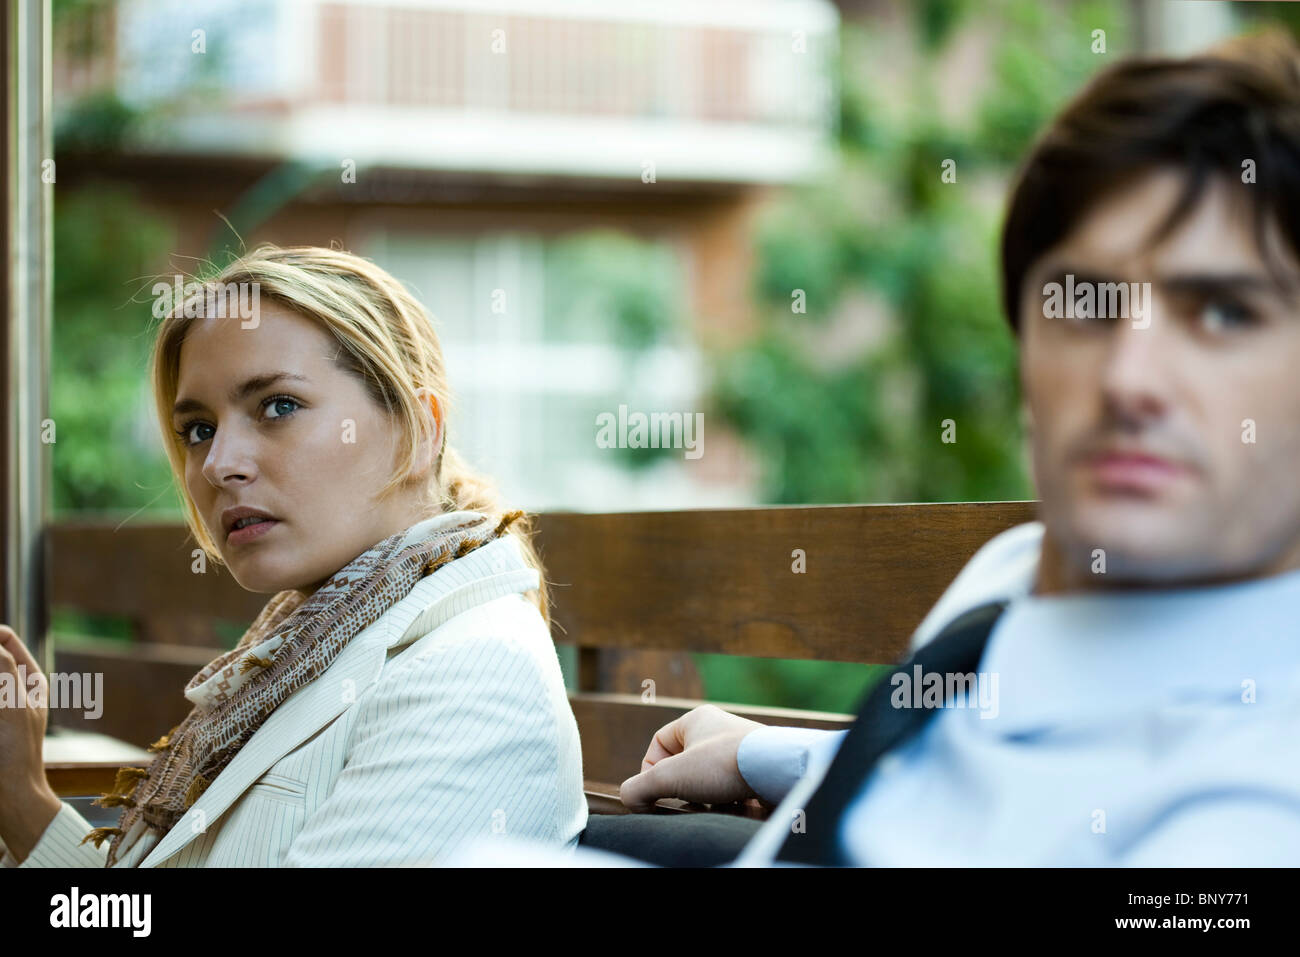 Couple sitting outdoors, woman looking away in distraction - Stock Image